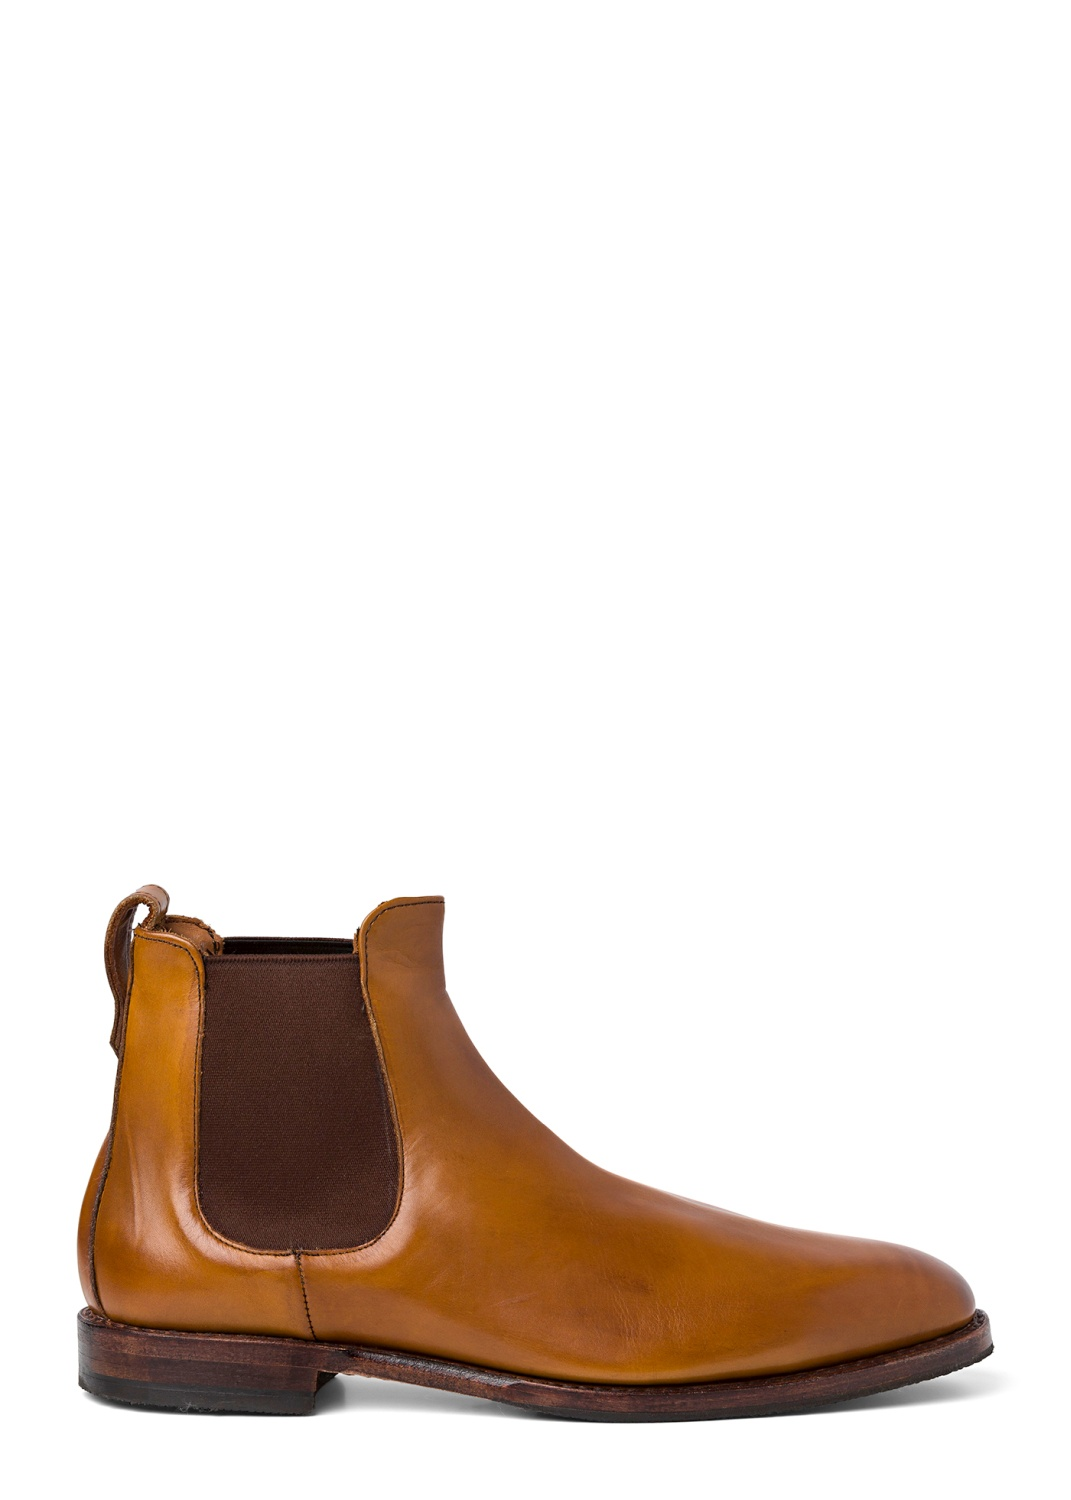 H-Schuhe LIVERPOOL image number 0